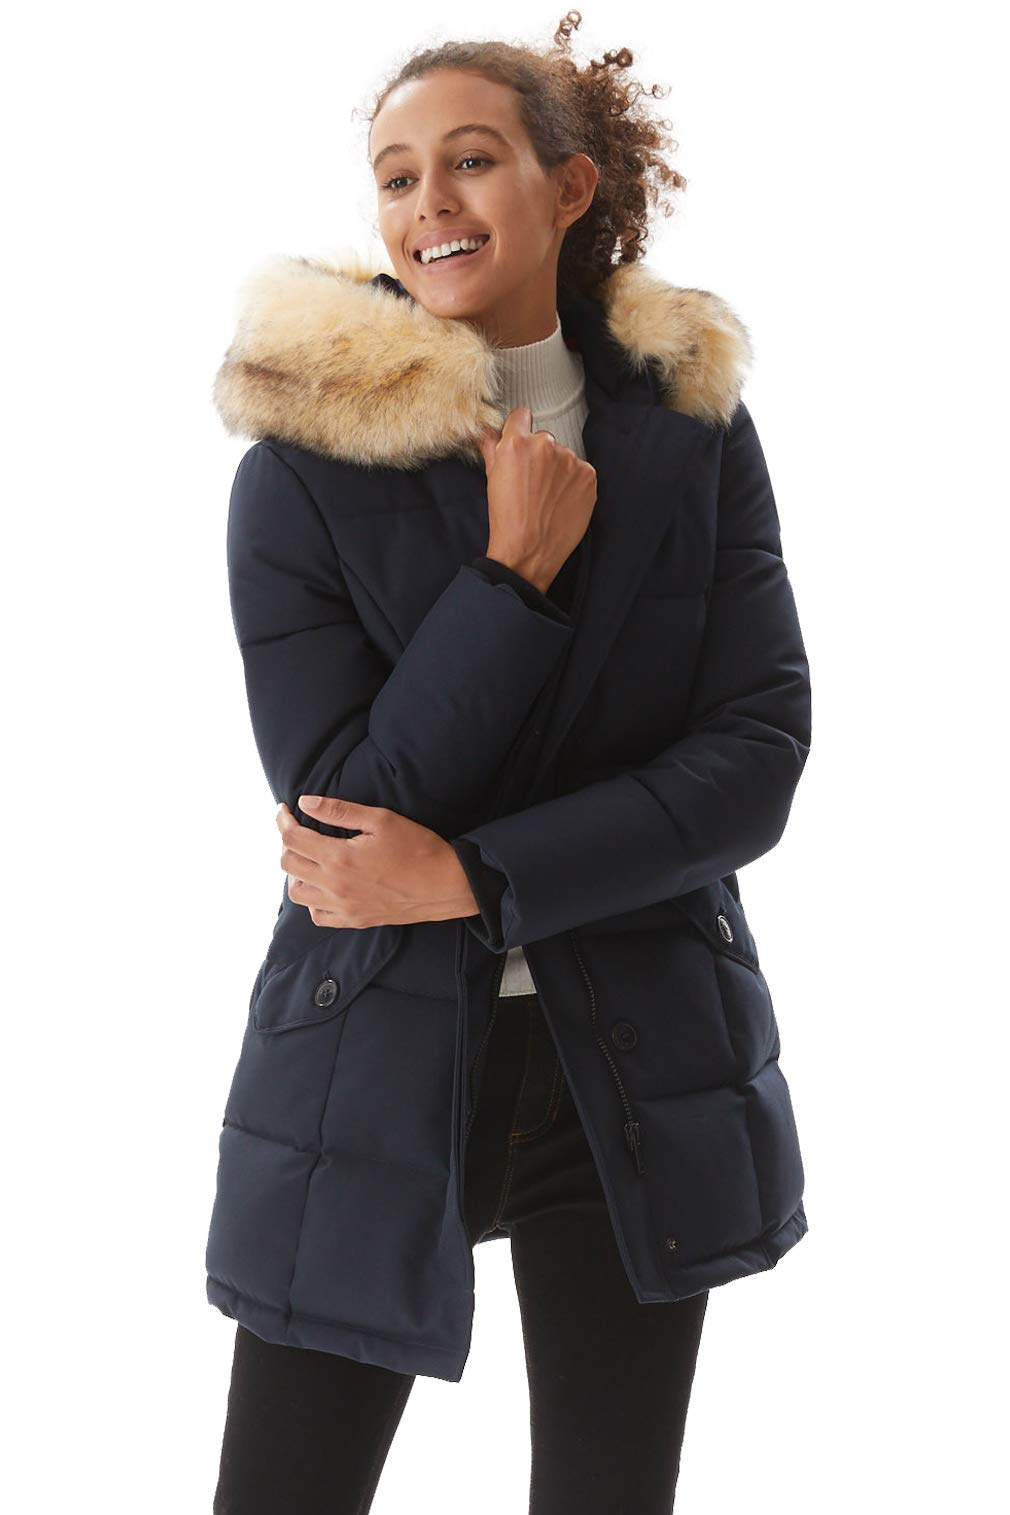 Molemsx Winter Coat for Women, Womens Warm Puffer Coat Parka Jacket with Fur Trimmed Hood Navy X-Large by Molemsx